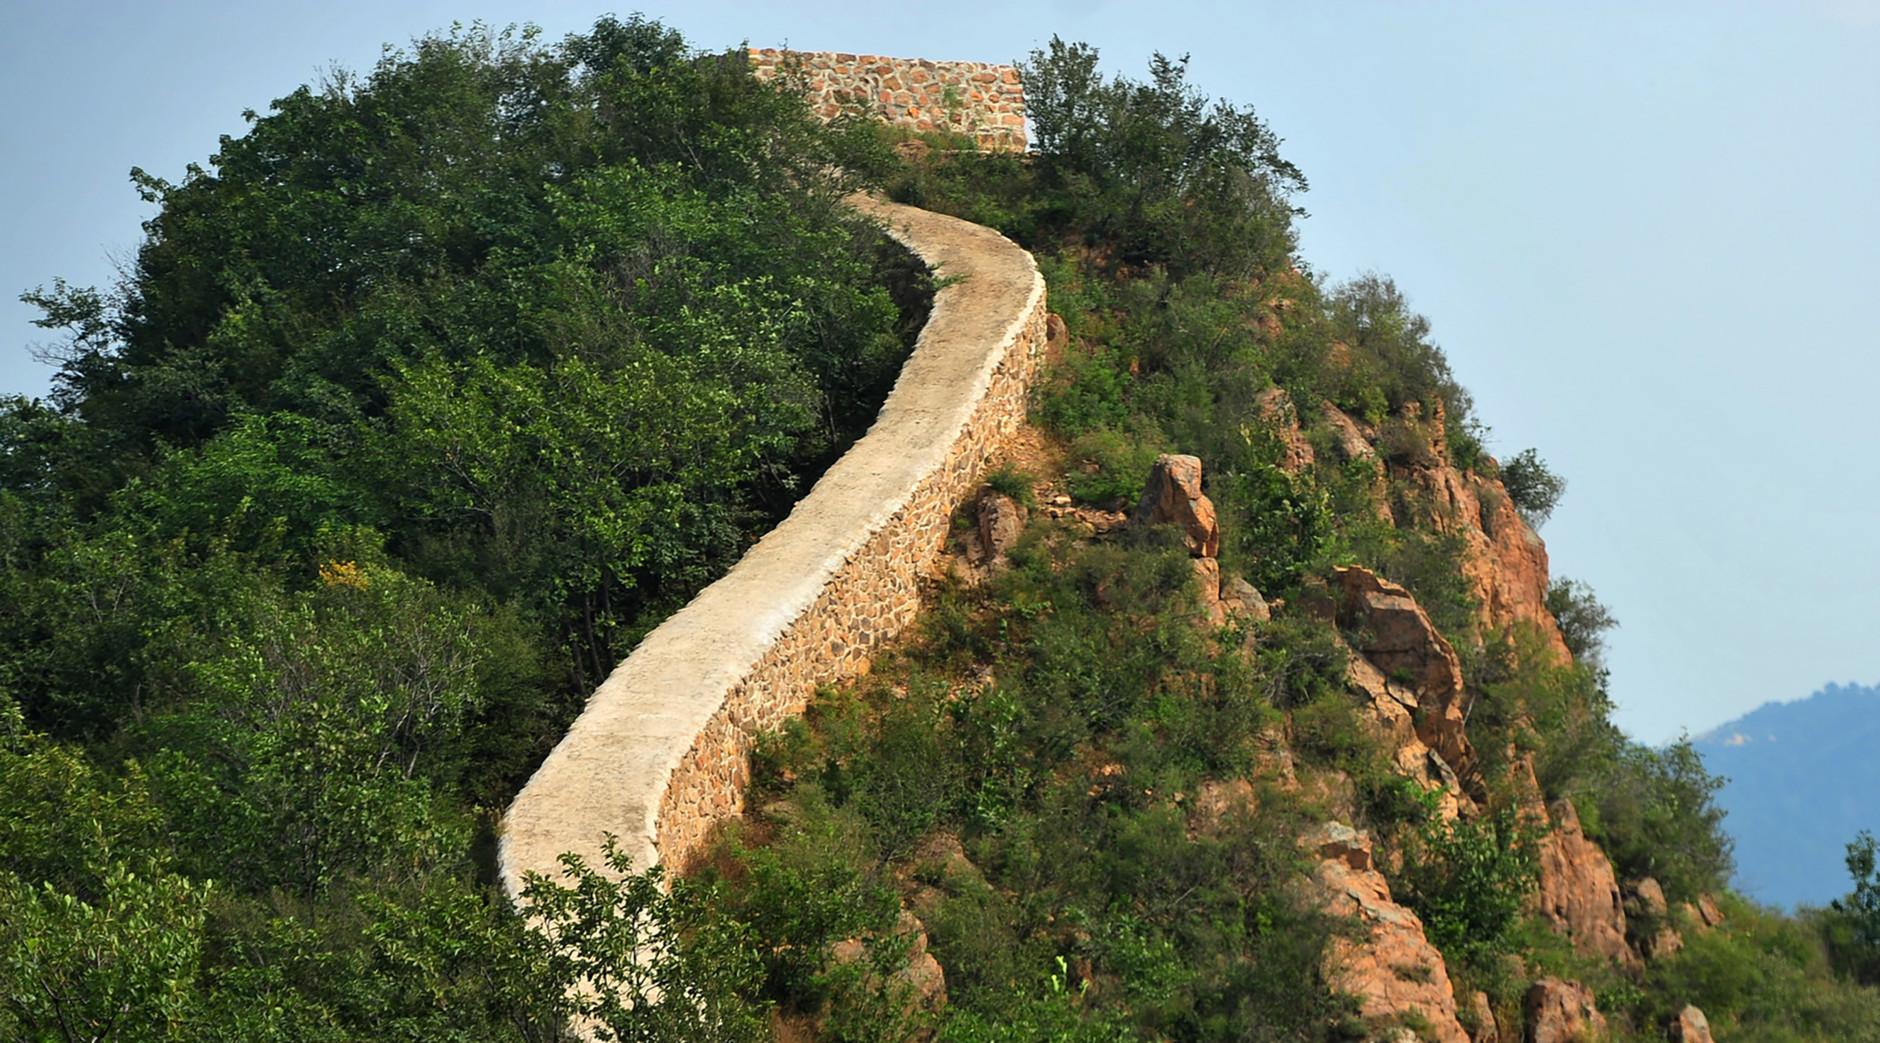 In this Wednesday, Sept. 21, 2016, photo, a restored section of the Great Wall is seen in Suizhong County in northeastern China's Liaoning Province. Chinese officials are being pilloried over the smoothing-over of a crumbling but much-loved 700-year-old section of the Great Wall of China - a UNESCO World Heritage Site - in the name of restoration. (Chinatopix via AP)